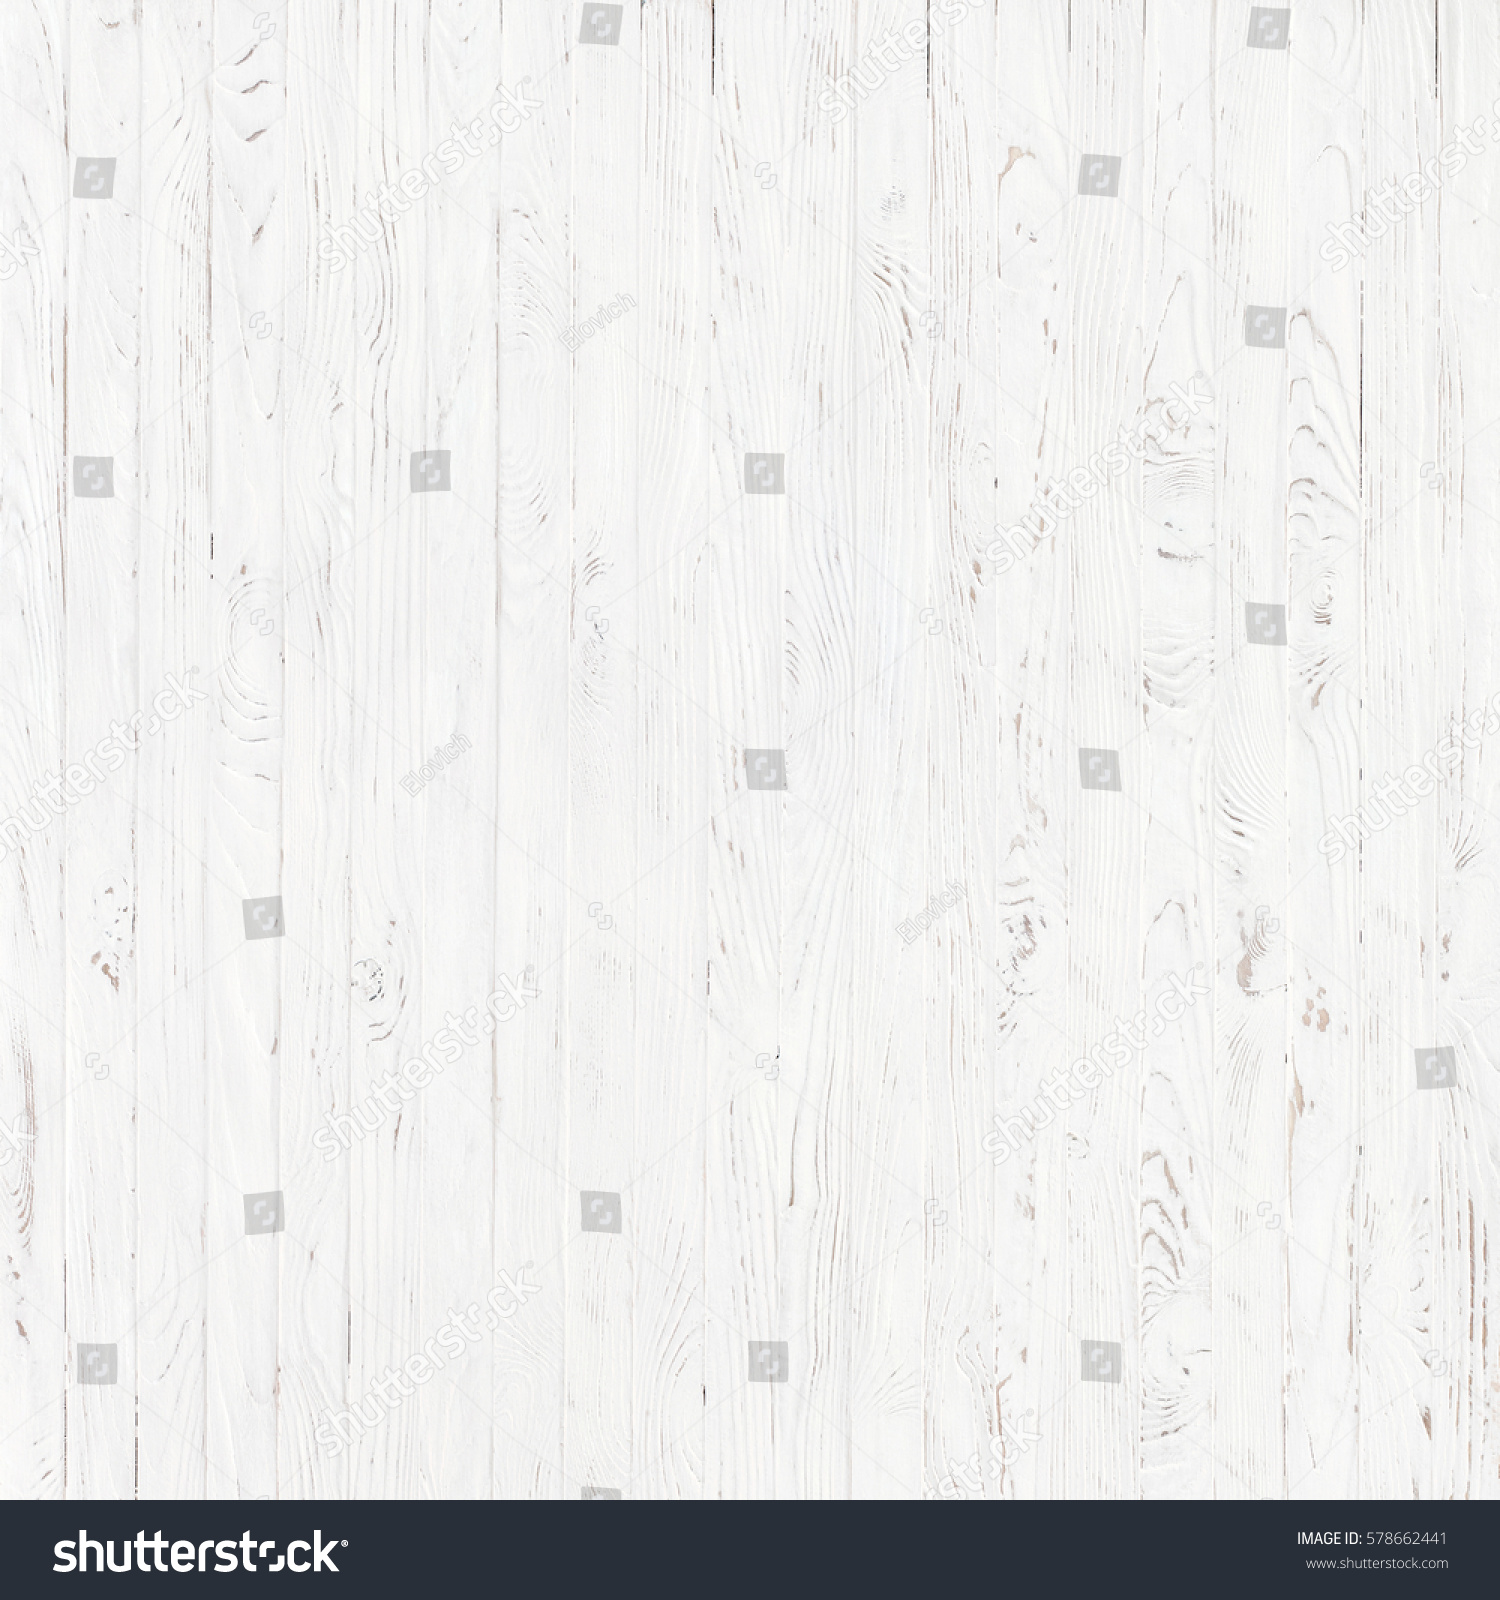 white wood table texture. white wood texture background, wooden table top view